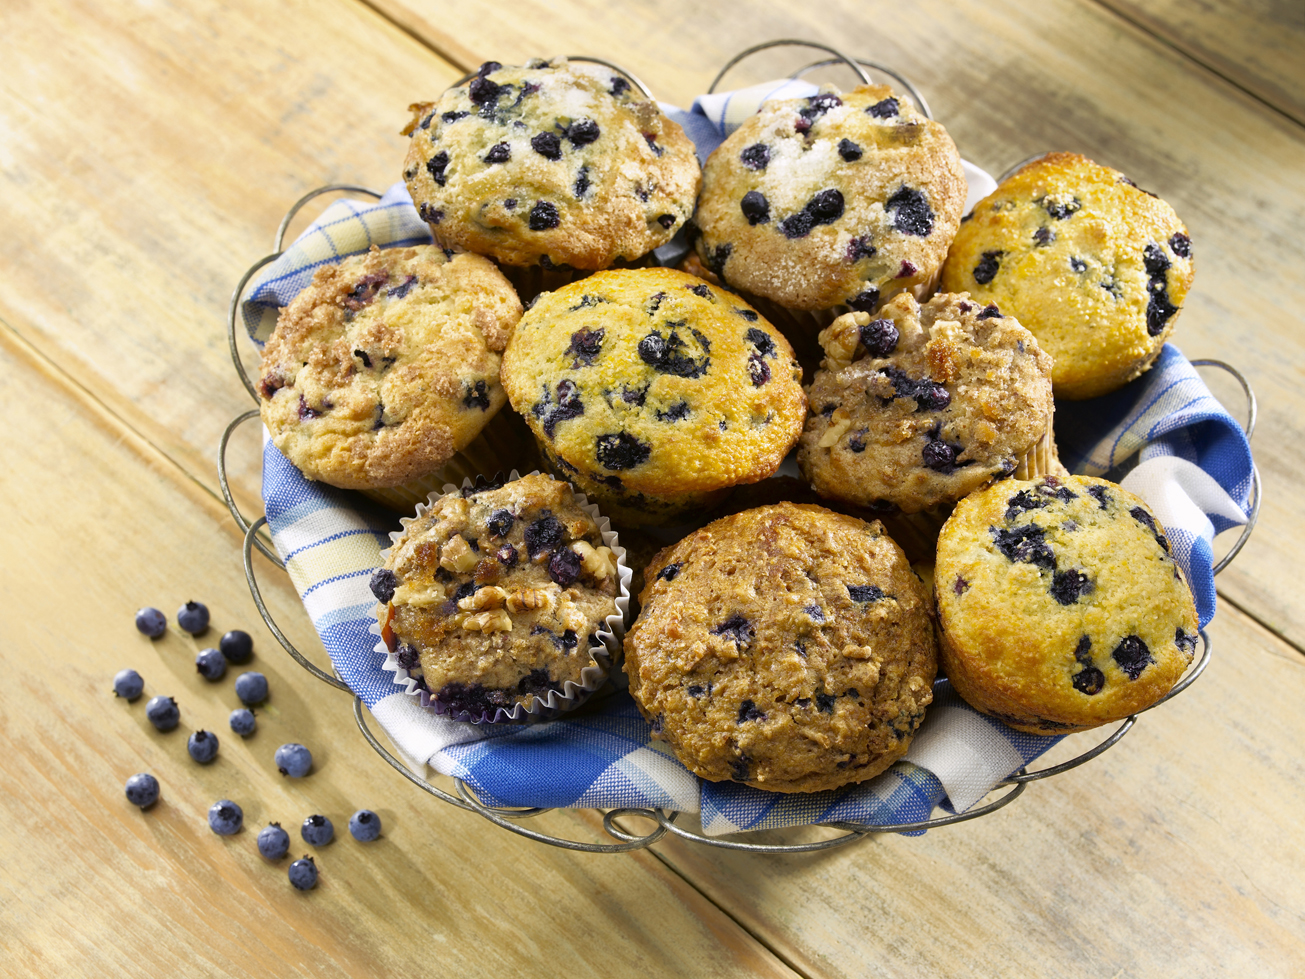 To Die For Wild Blueberry Muffins